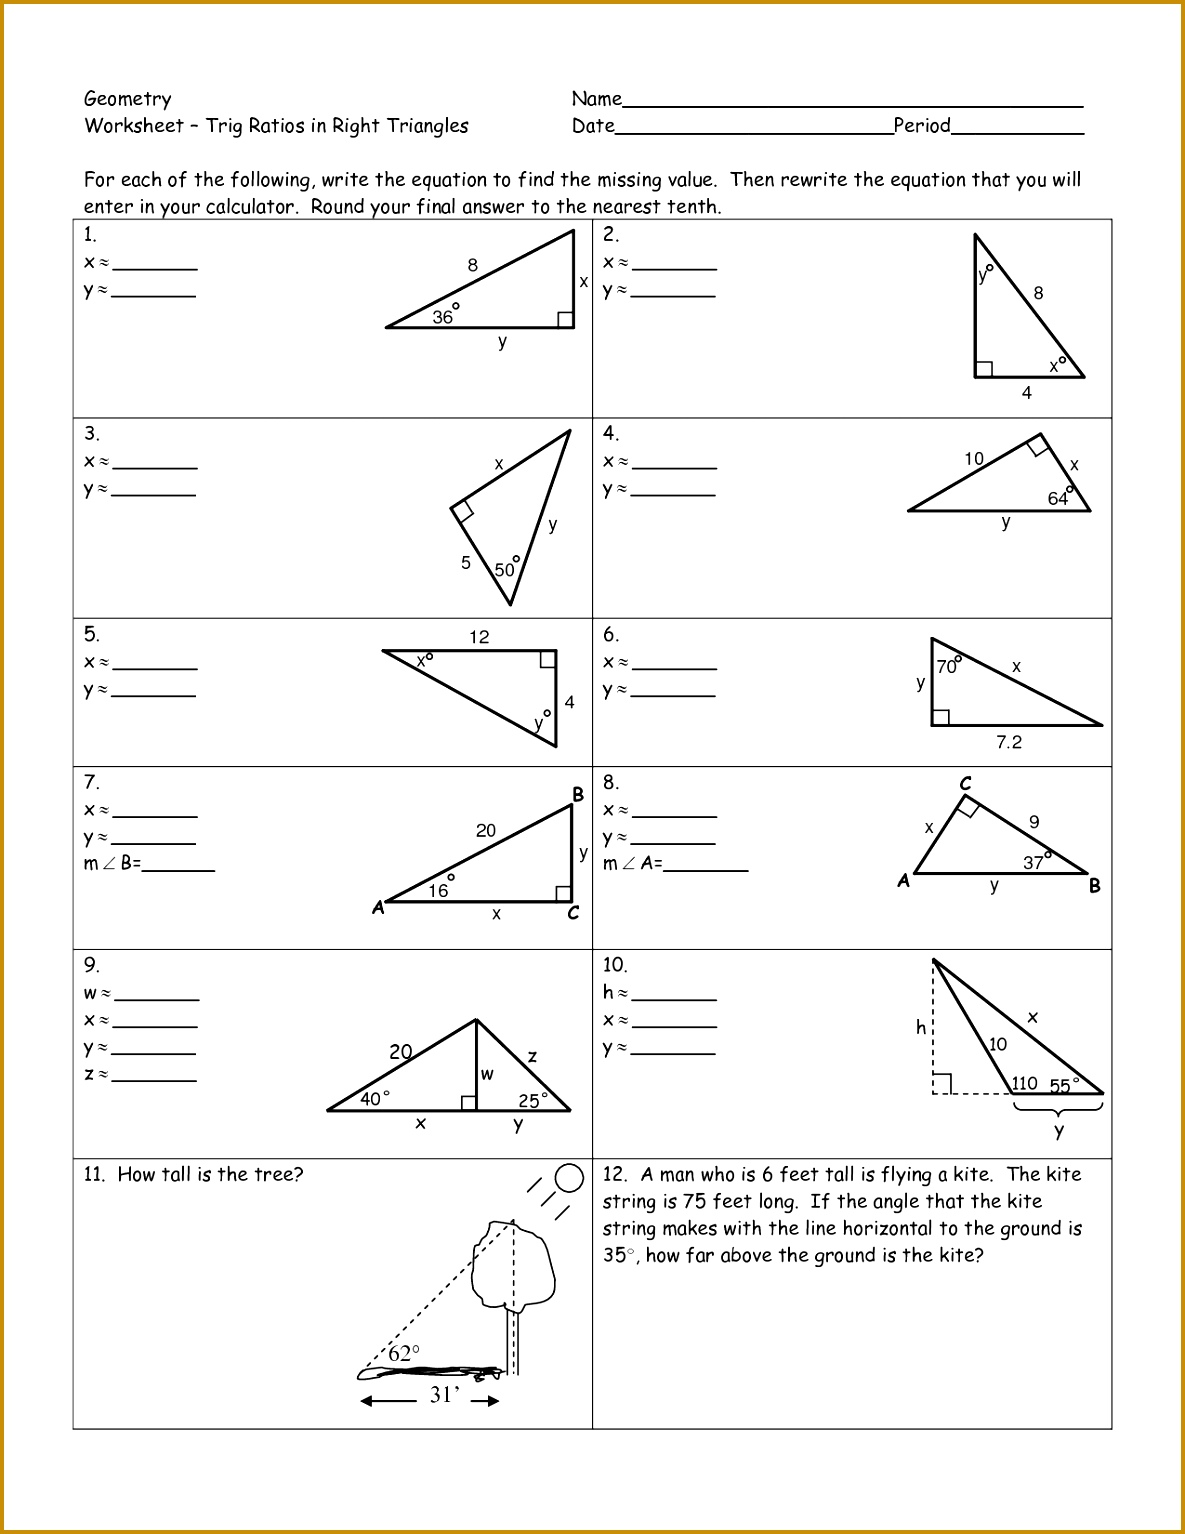 Worksheet For Ratios